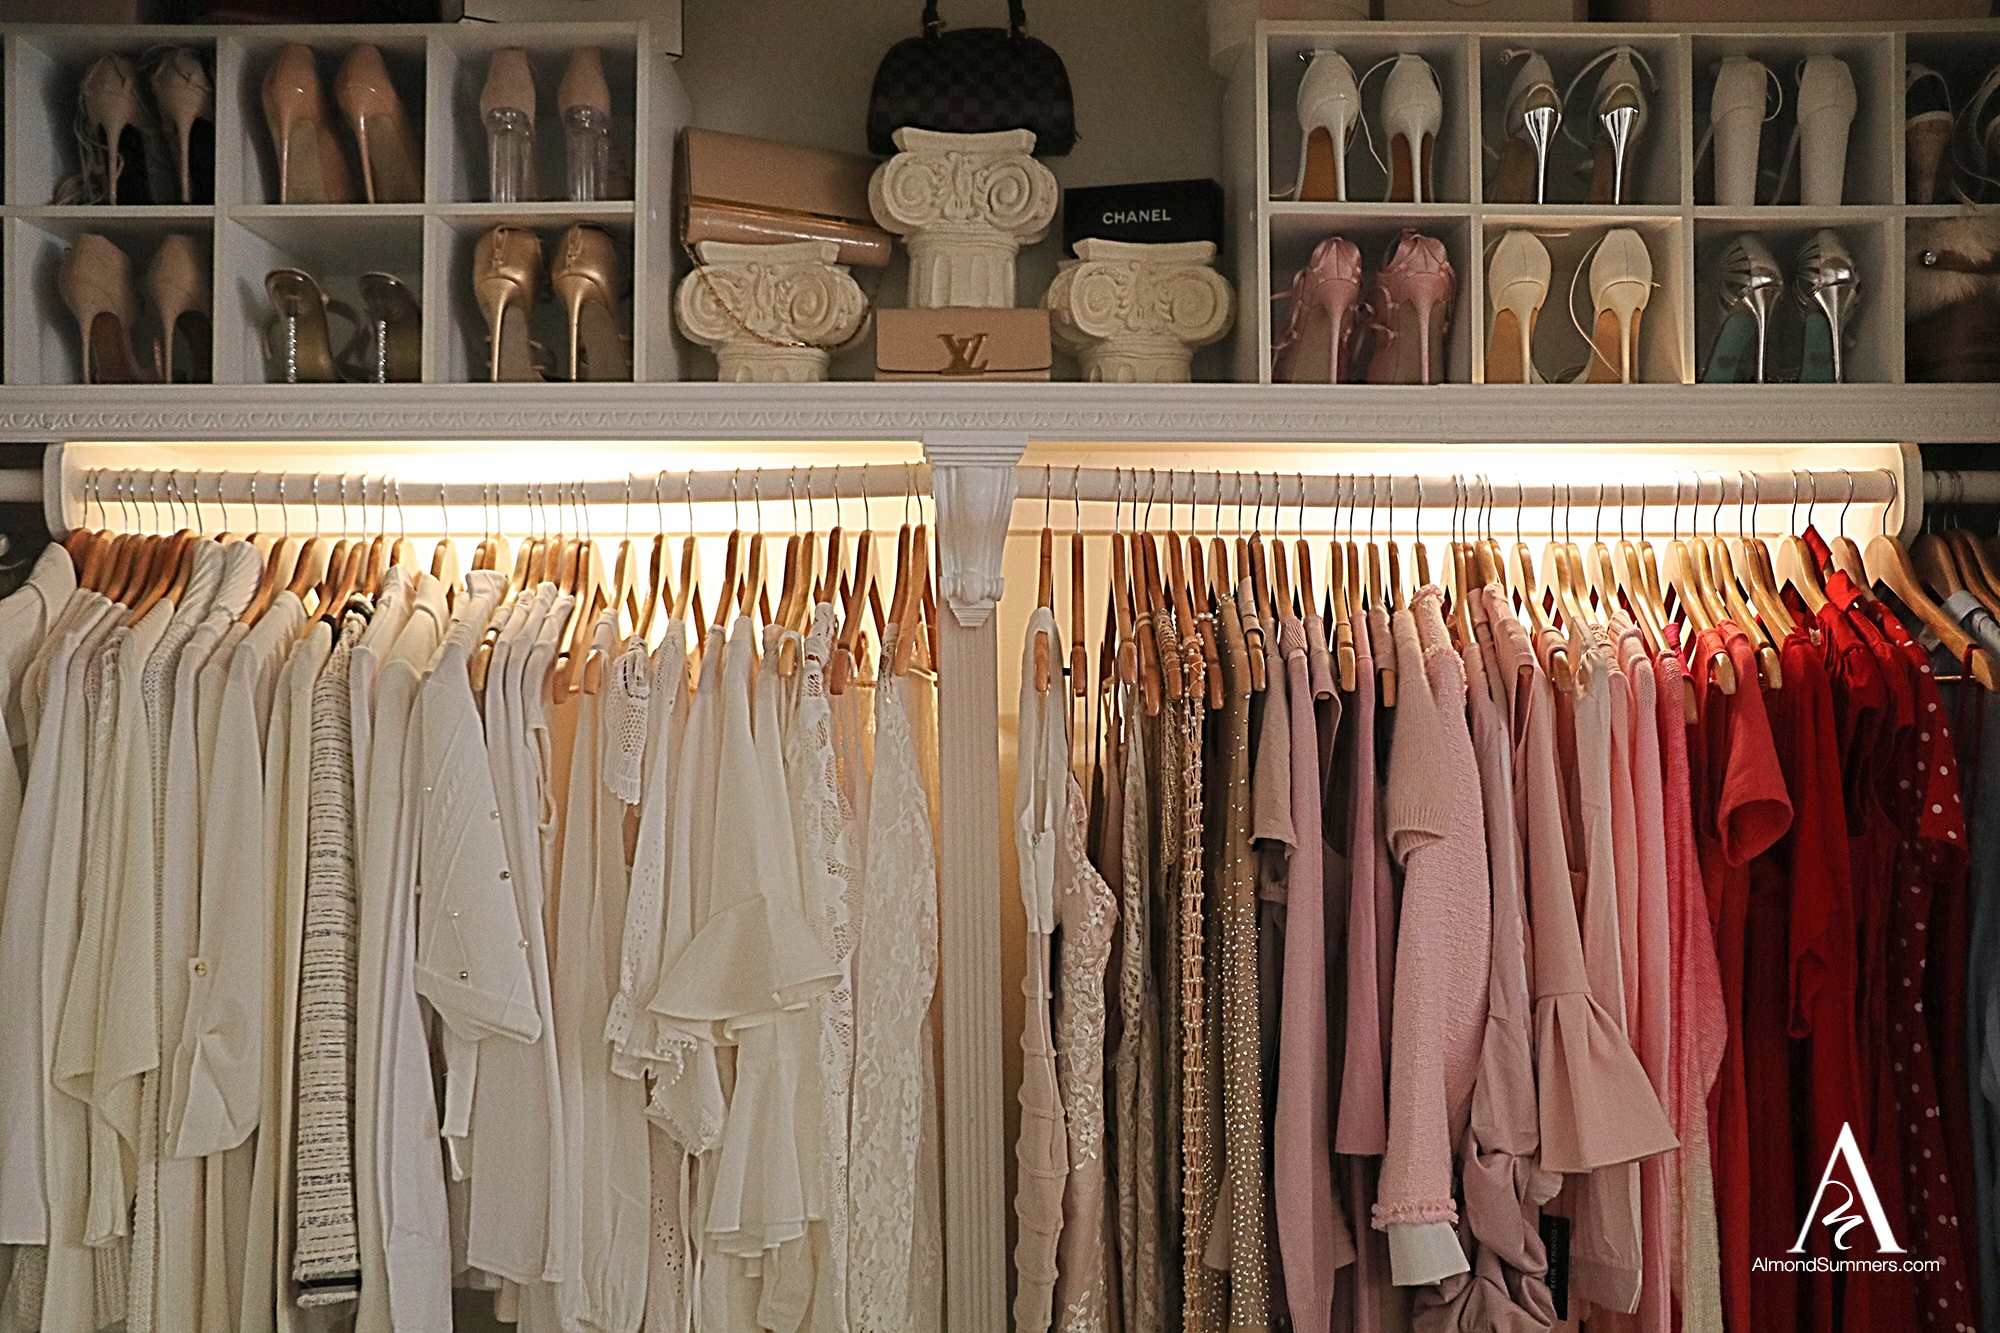 Closet Lighting Ideas Closet Decorating Ideas | How To Decorate Your Closet | DIY Closet Organization | Organizing a Small Closet | DIY Closet Shelves Small closet organization ideas